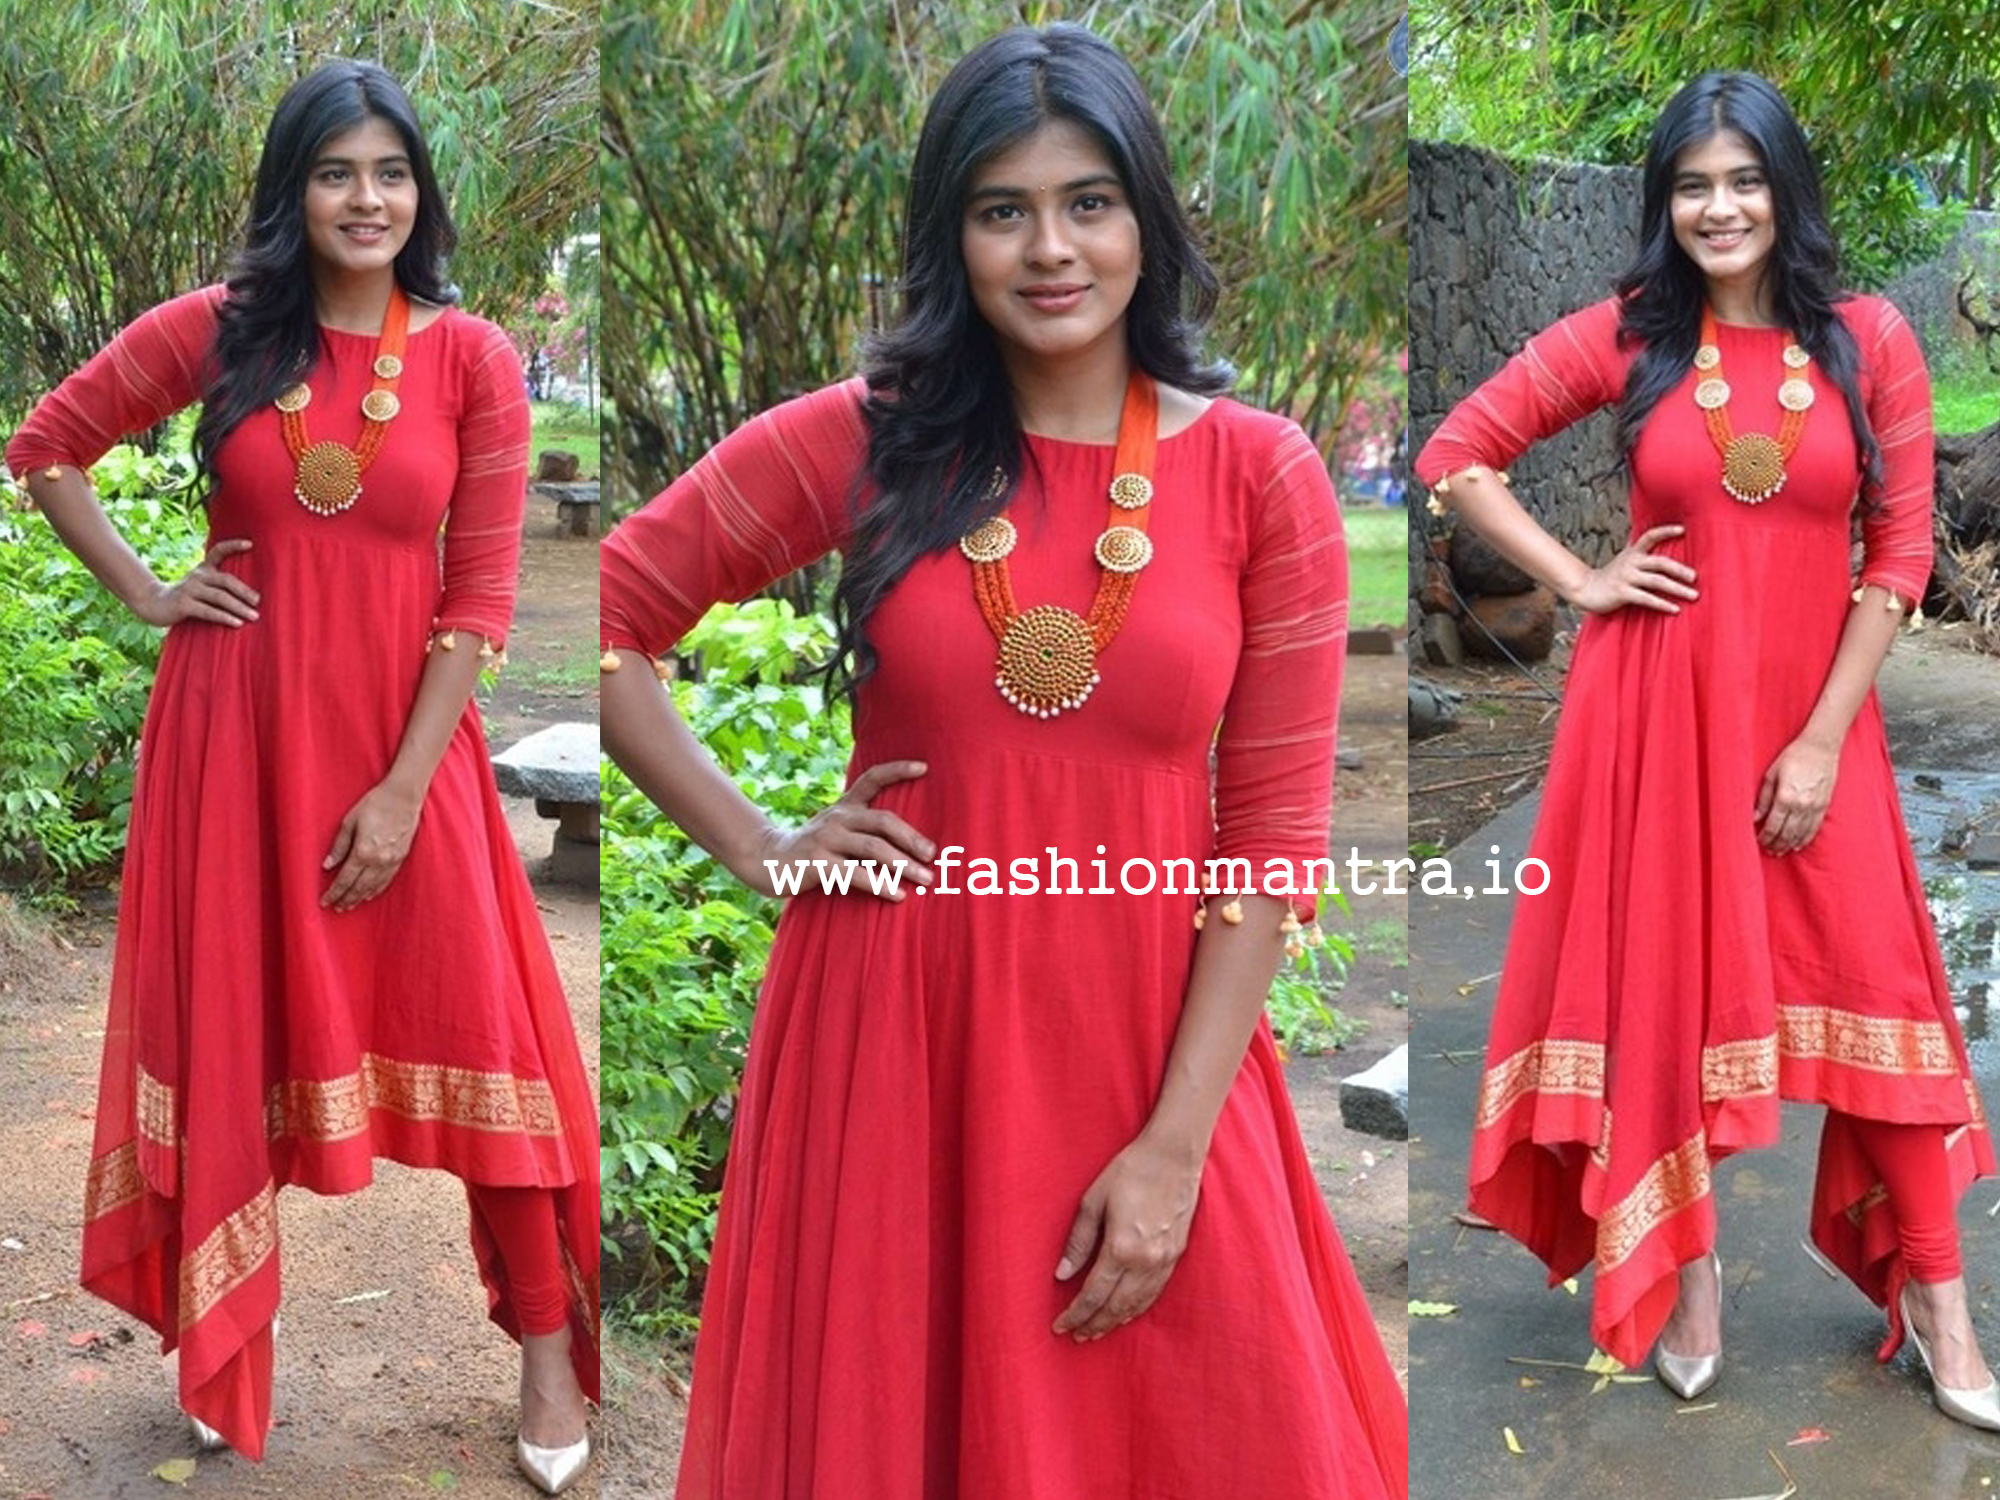 hebah patel in Red